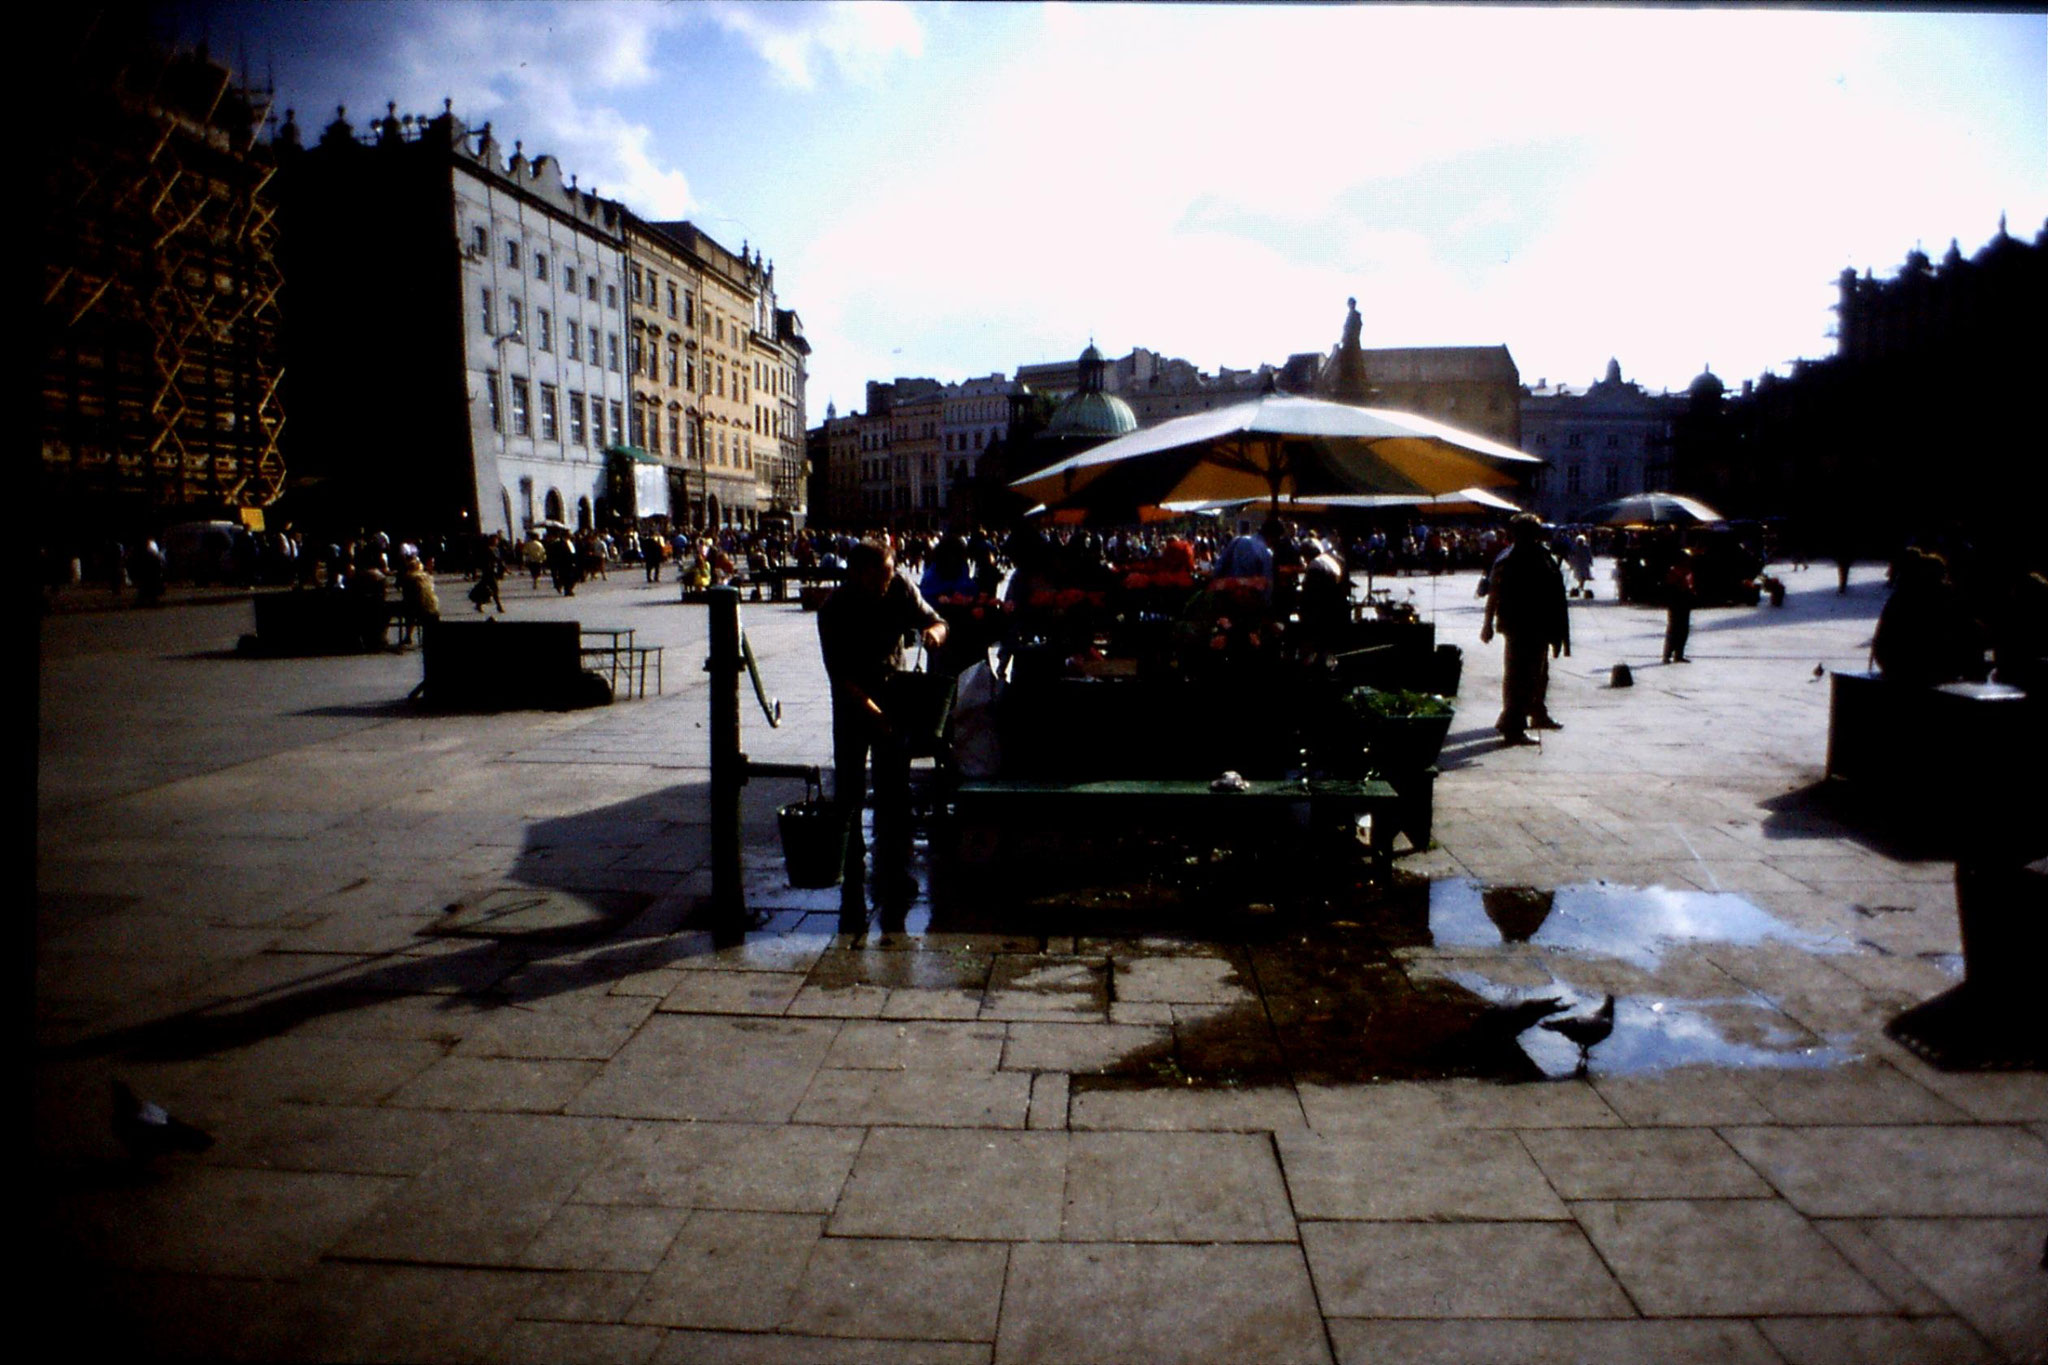 24/8/1988: 7: Krakow, water pump in square